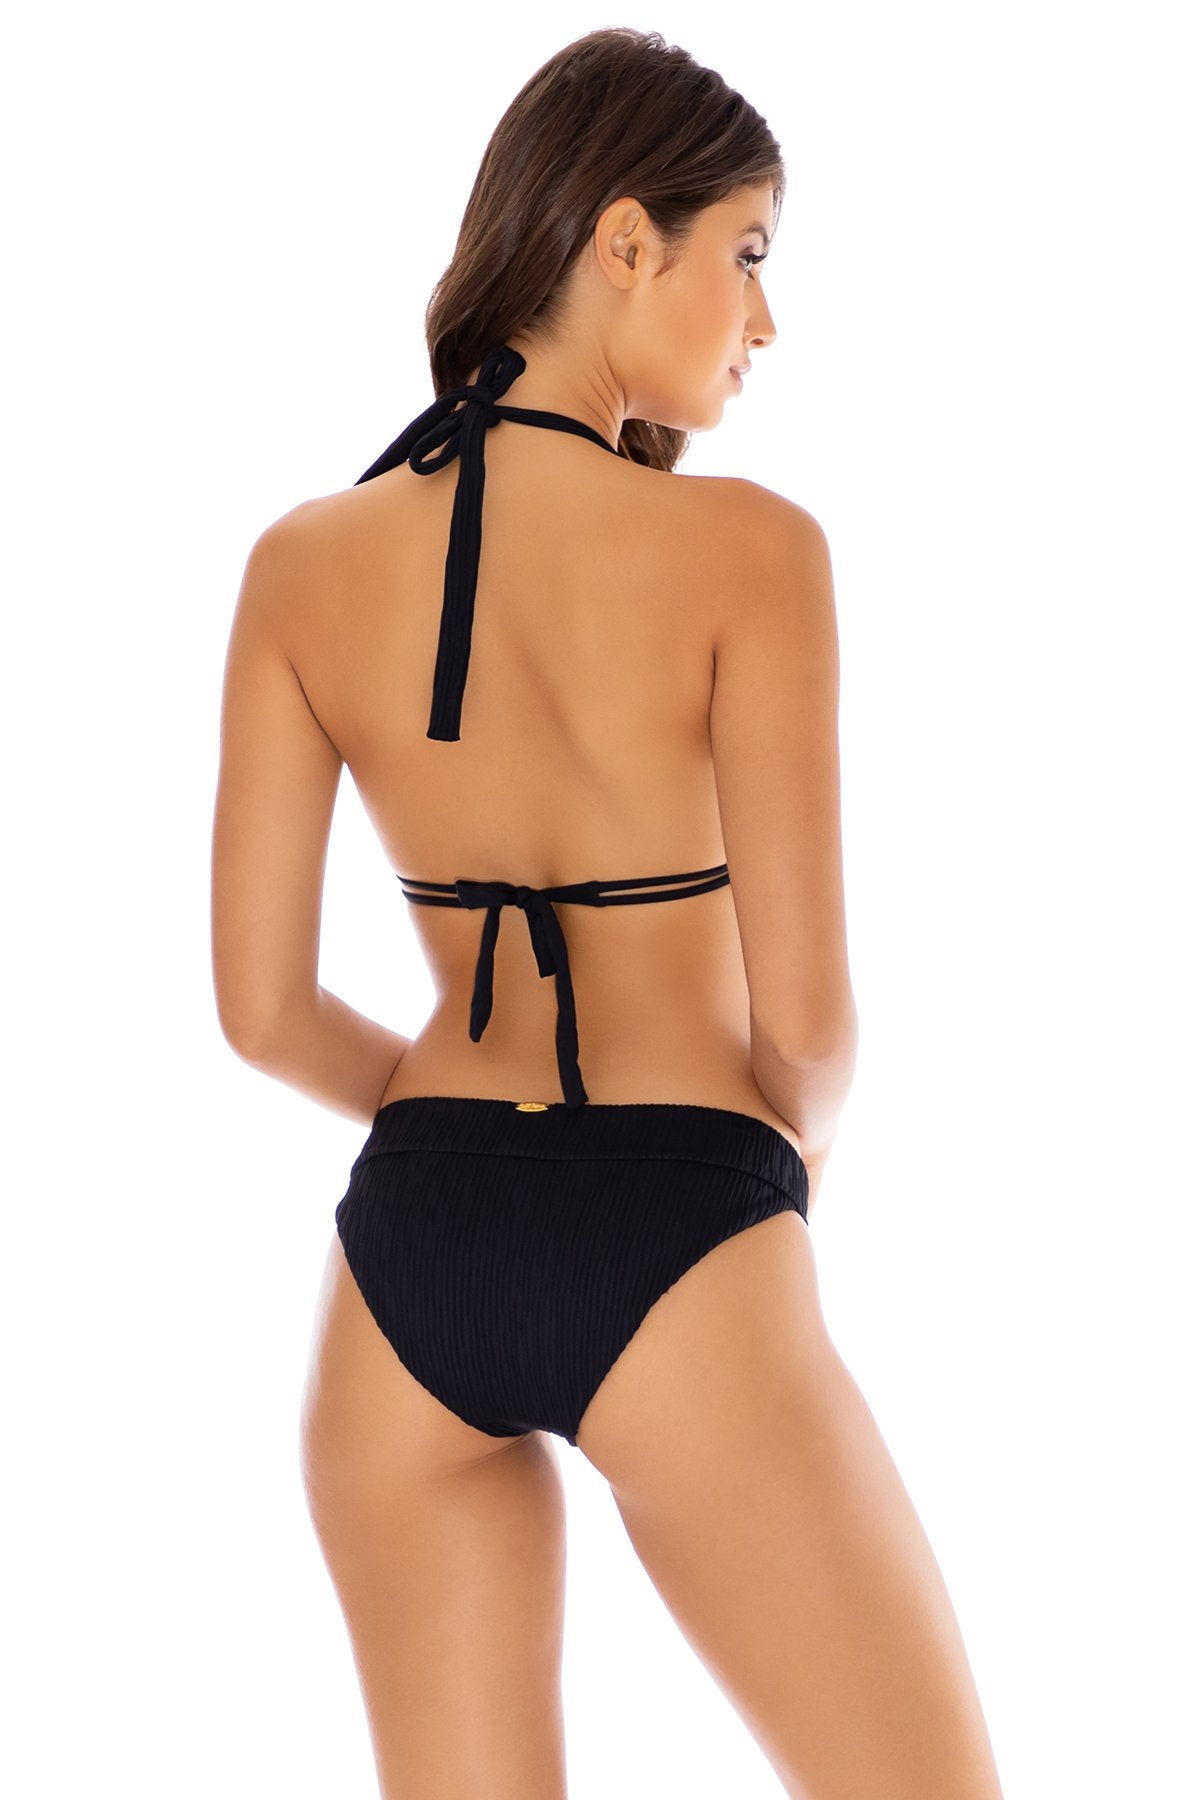 RIVER DANCE - Triangle Halter Top & Banded Full Bottom • Black